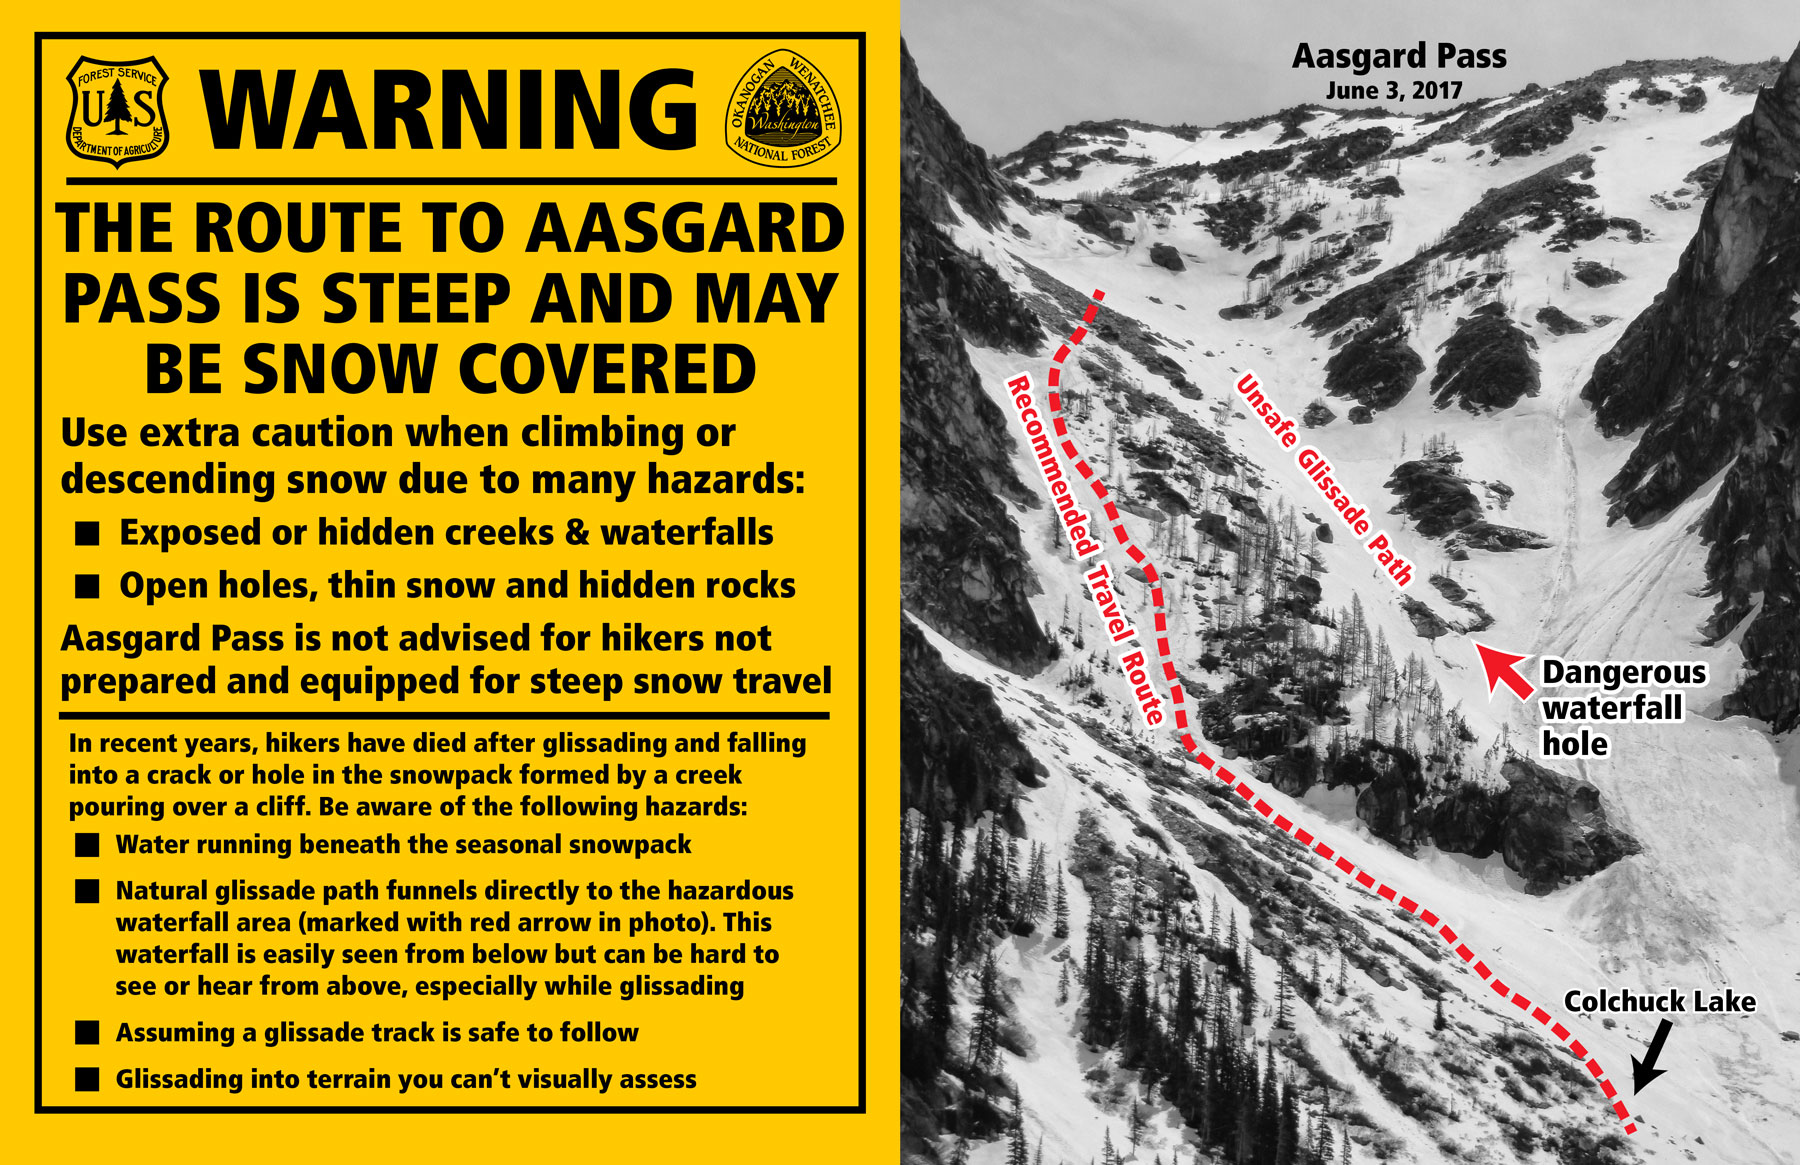 Warning sign for Aasgard Pass